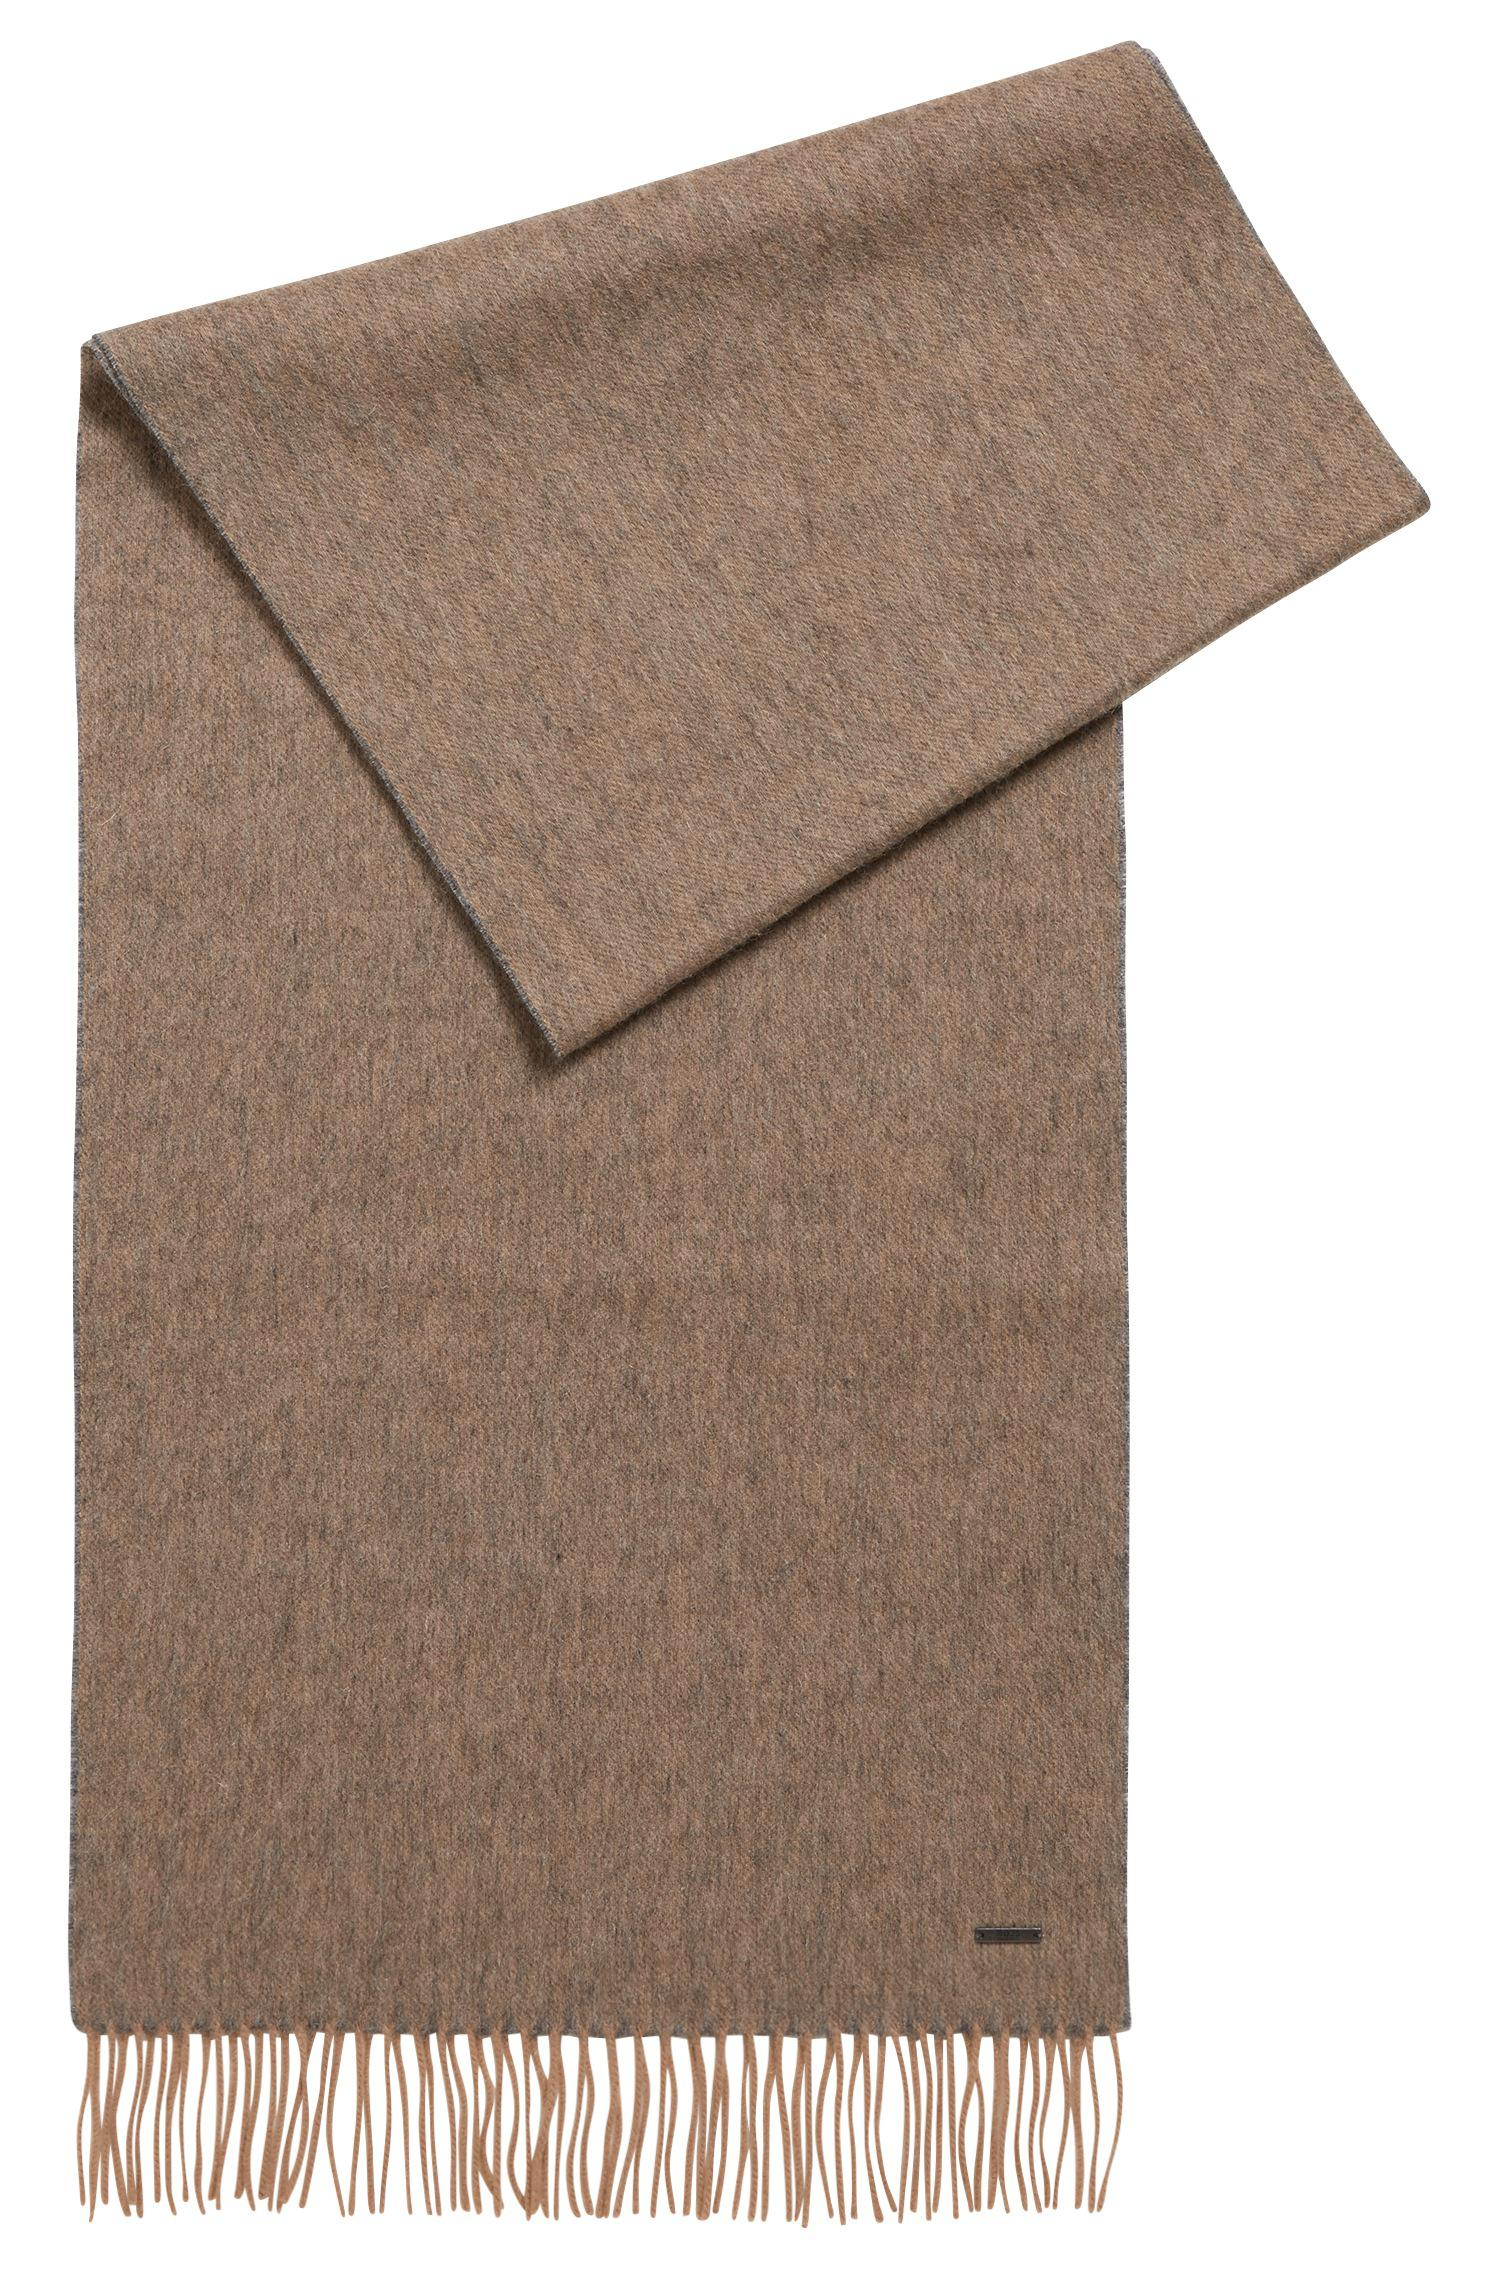 Lyst - BOSS Melange-effect Wool Scarf in Natural ec342bf4a0a